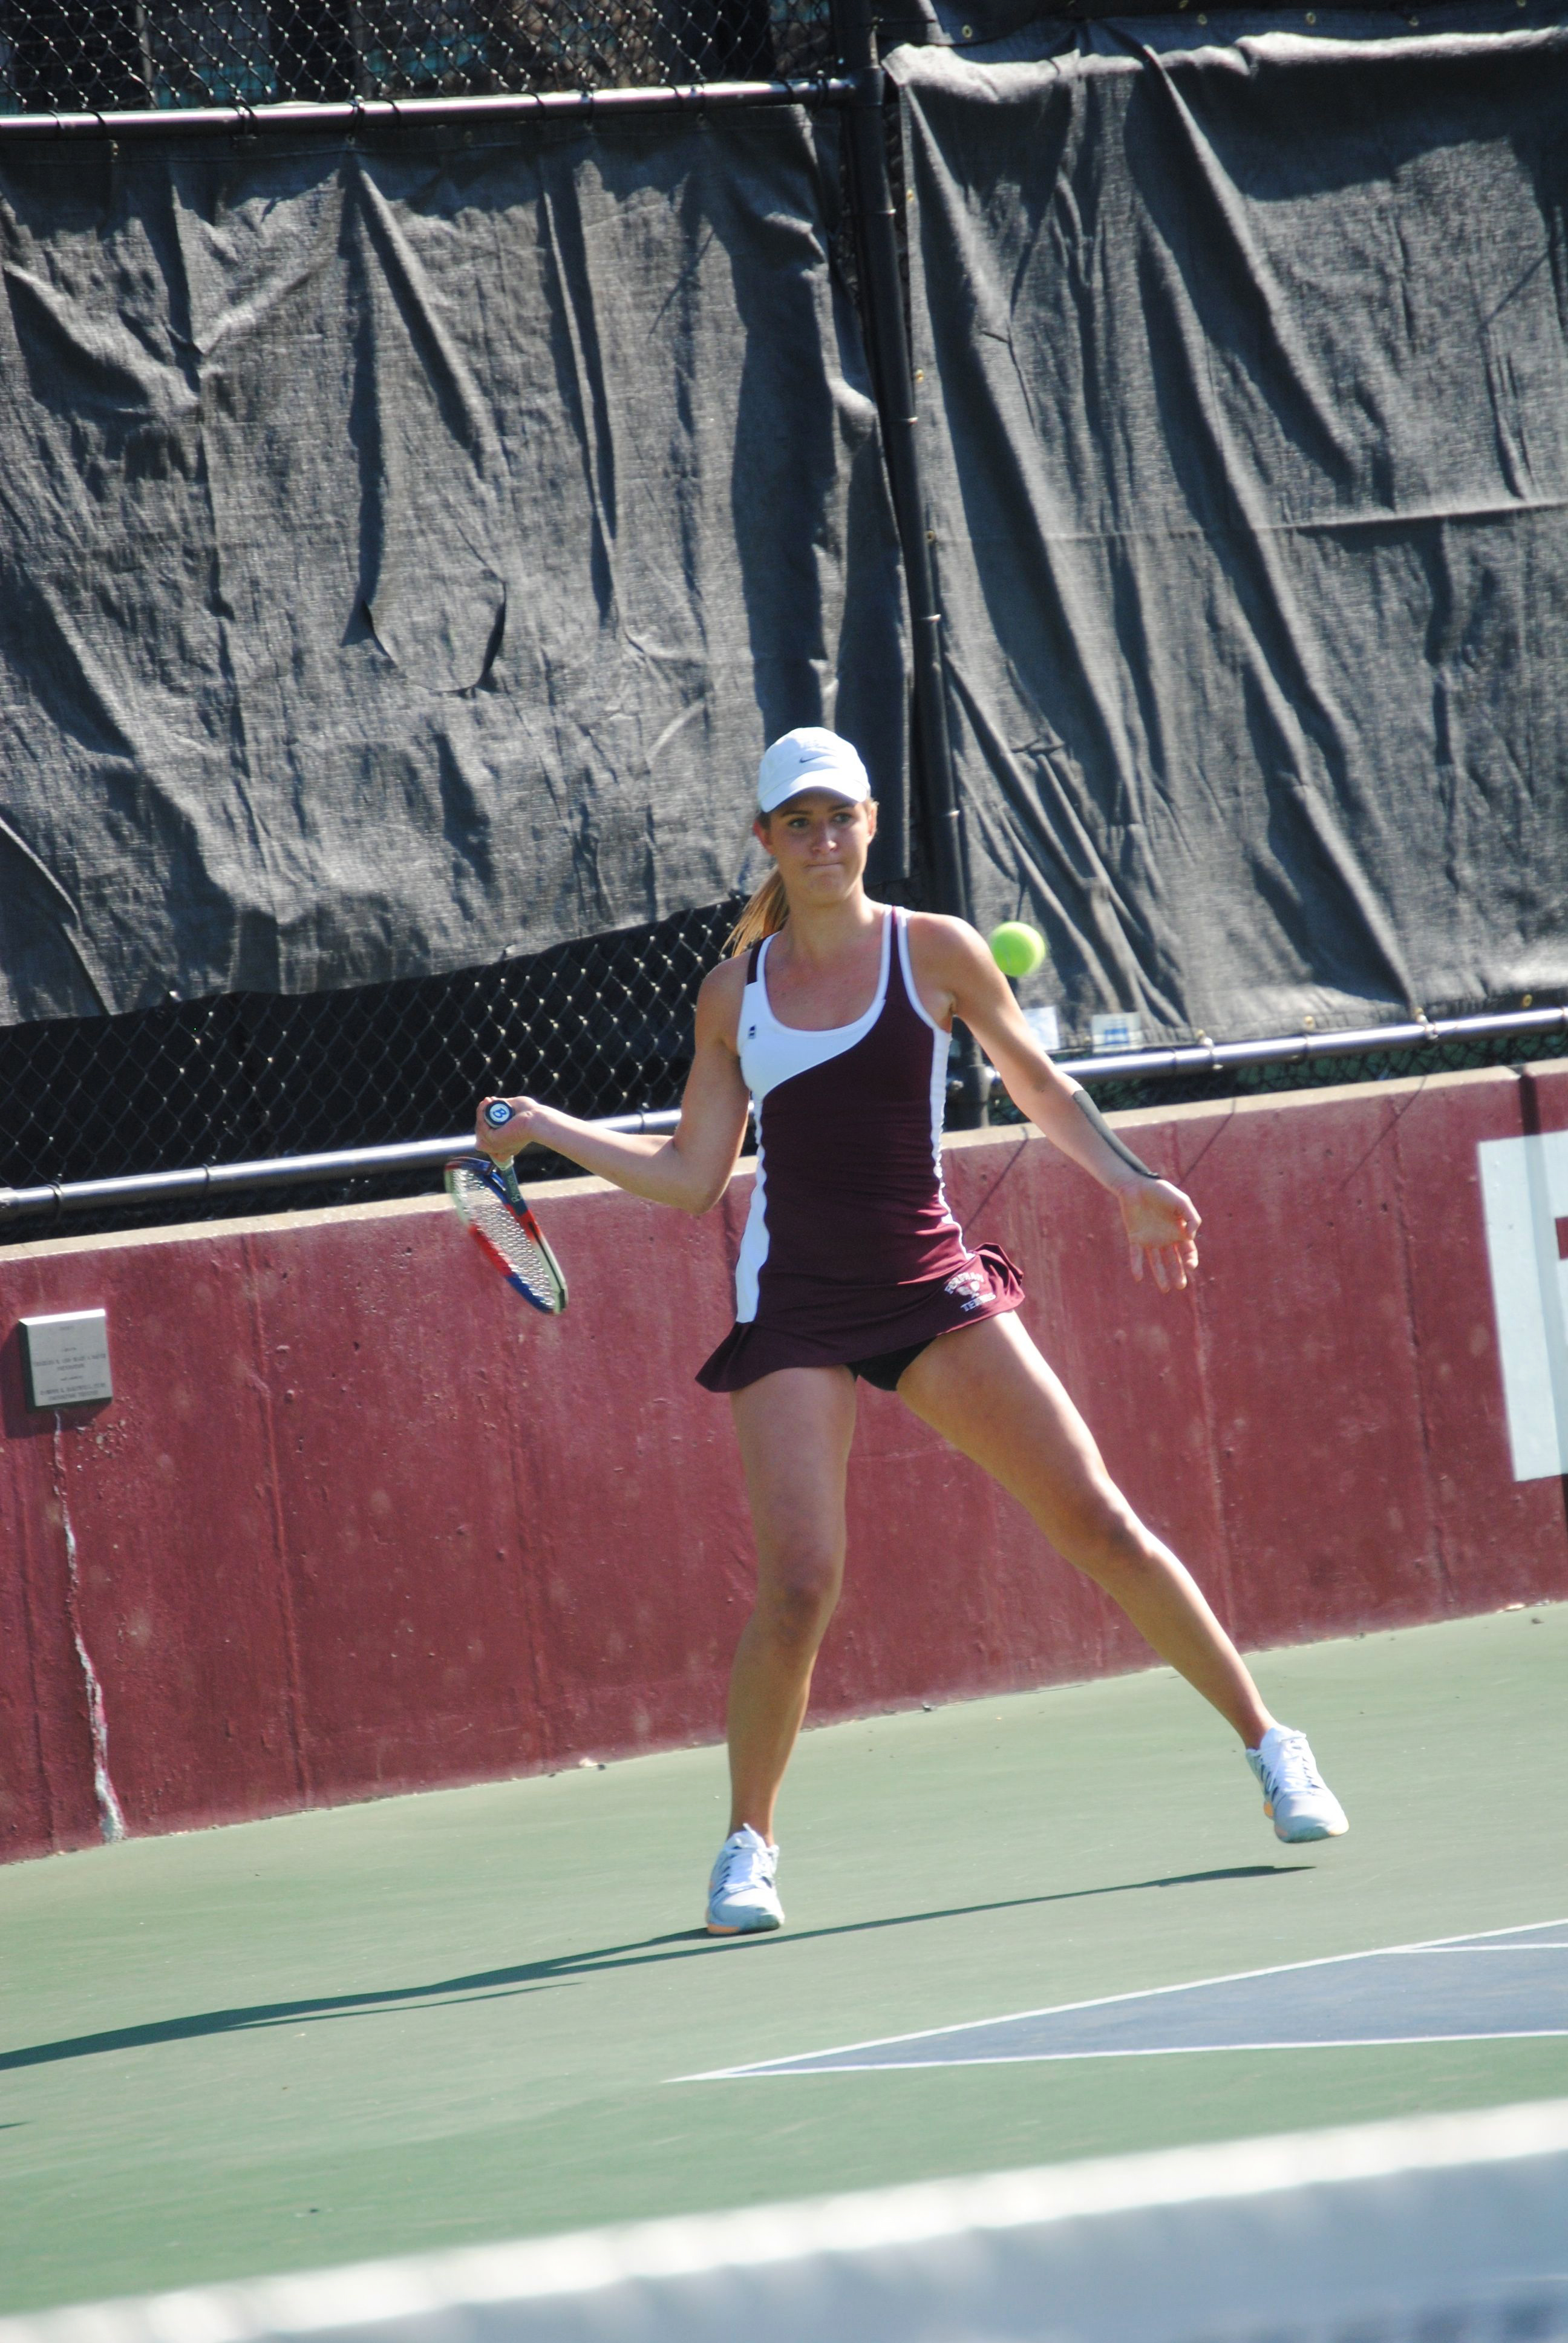 Courtesy of Drew Dipane/The Ram Anika Novacek was part of the only doubles team to win against Duquesne.